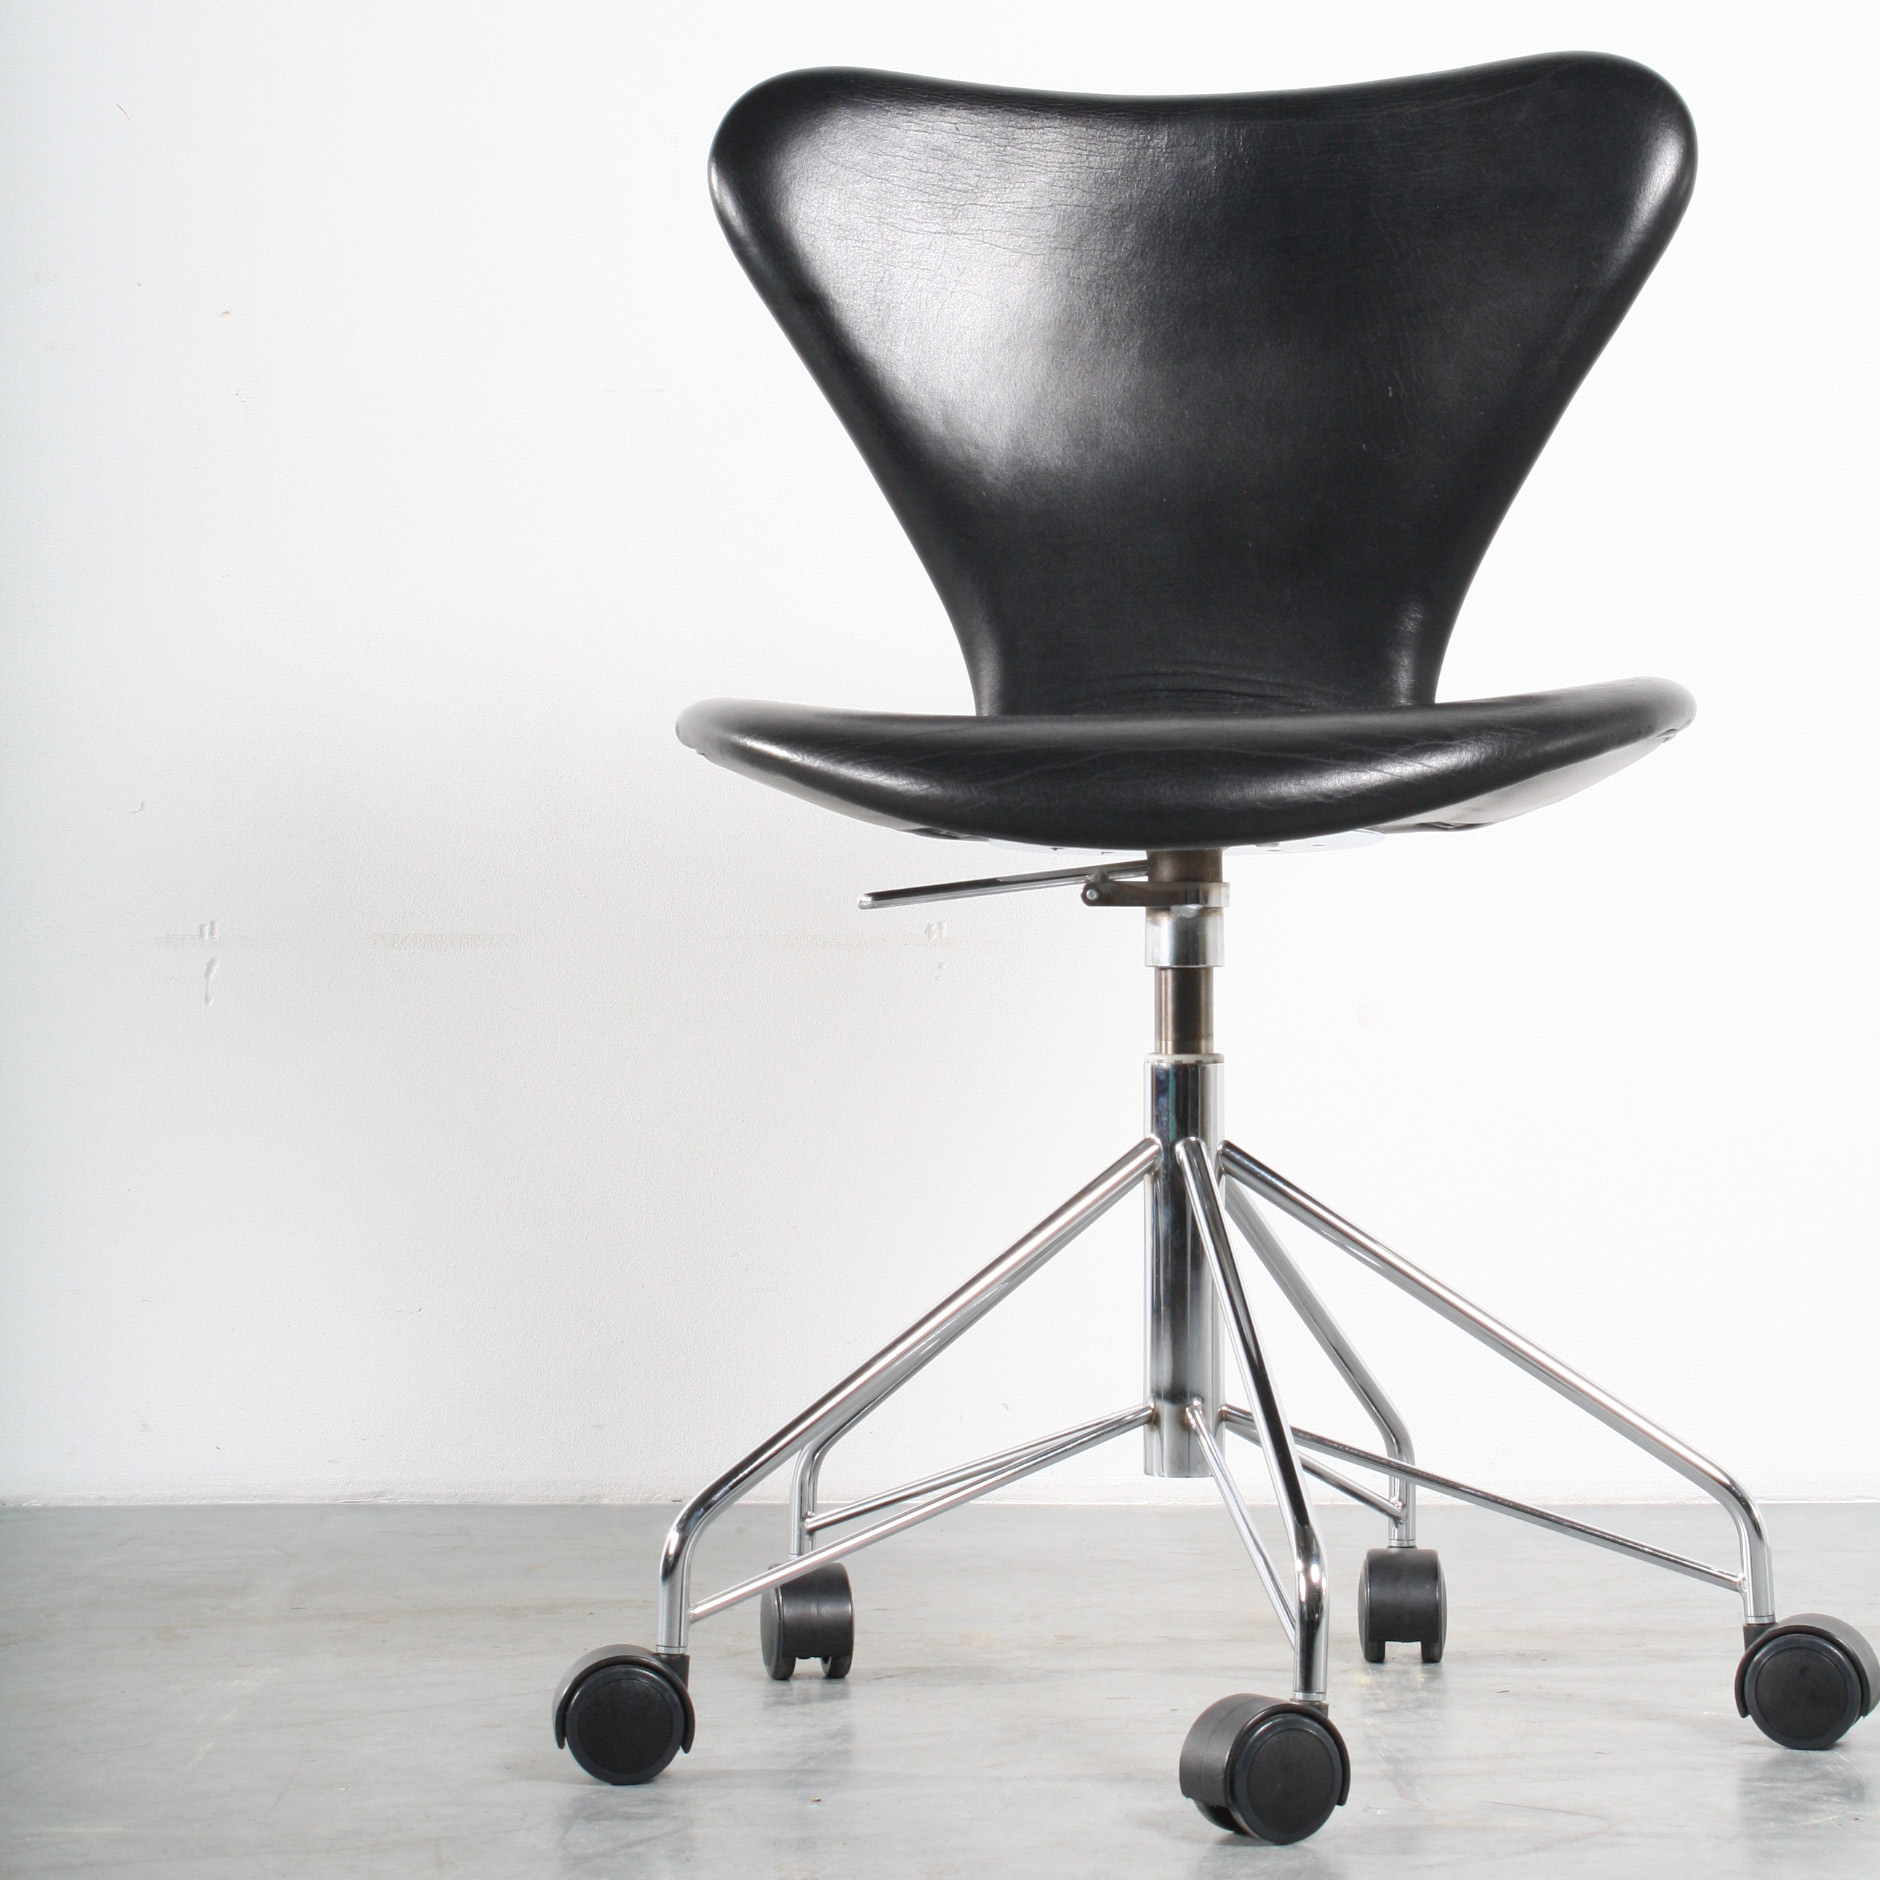 Fritz Hansen design desk chair Arne Jacobsen bureaustoel